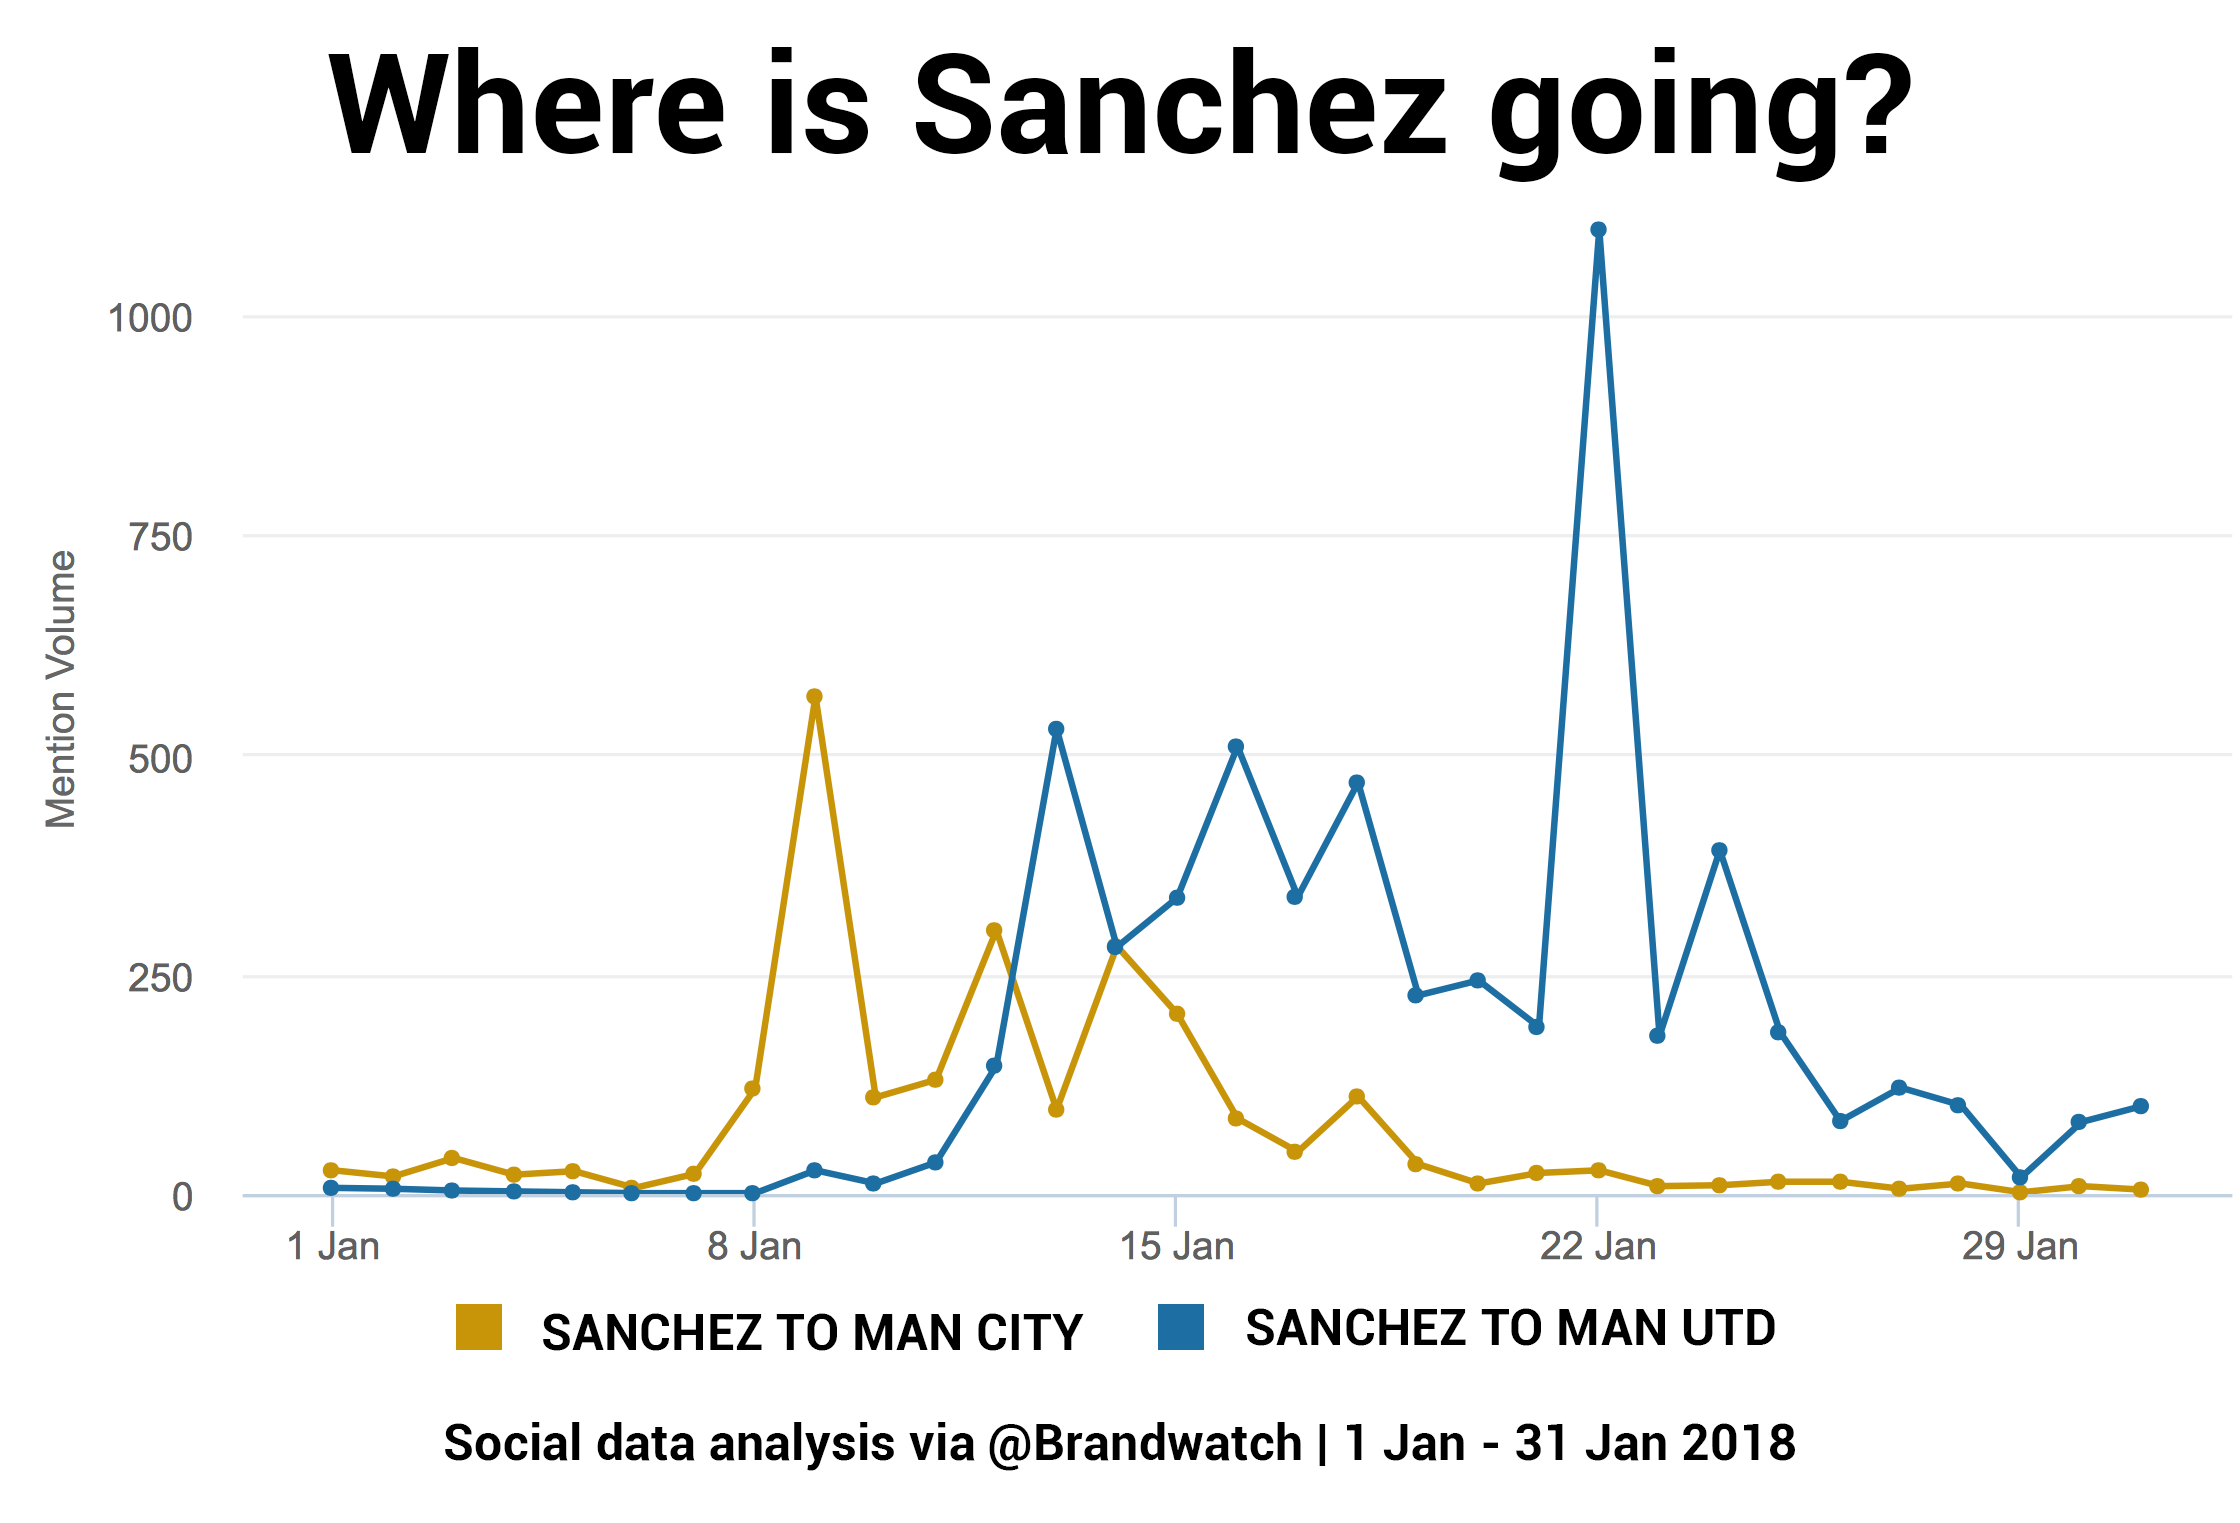 Line chart shows people talking about Sanchez going to Man City and Sanchez going to Man Utd. Man City mentions occur earlier in the month and less frequently.